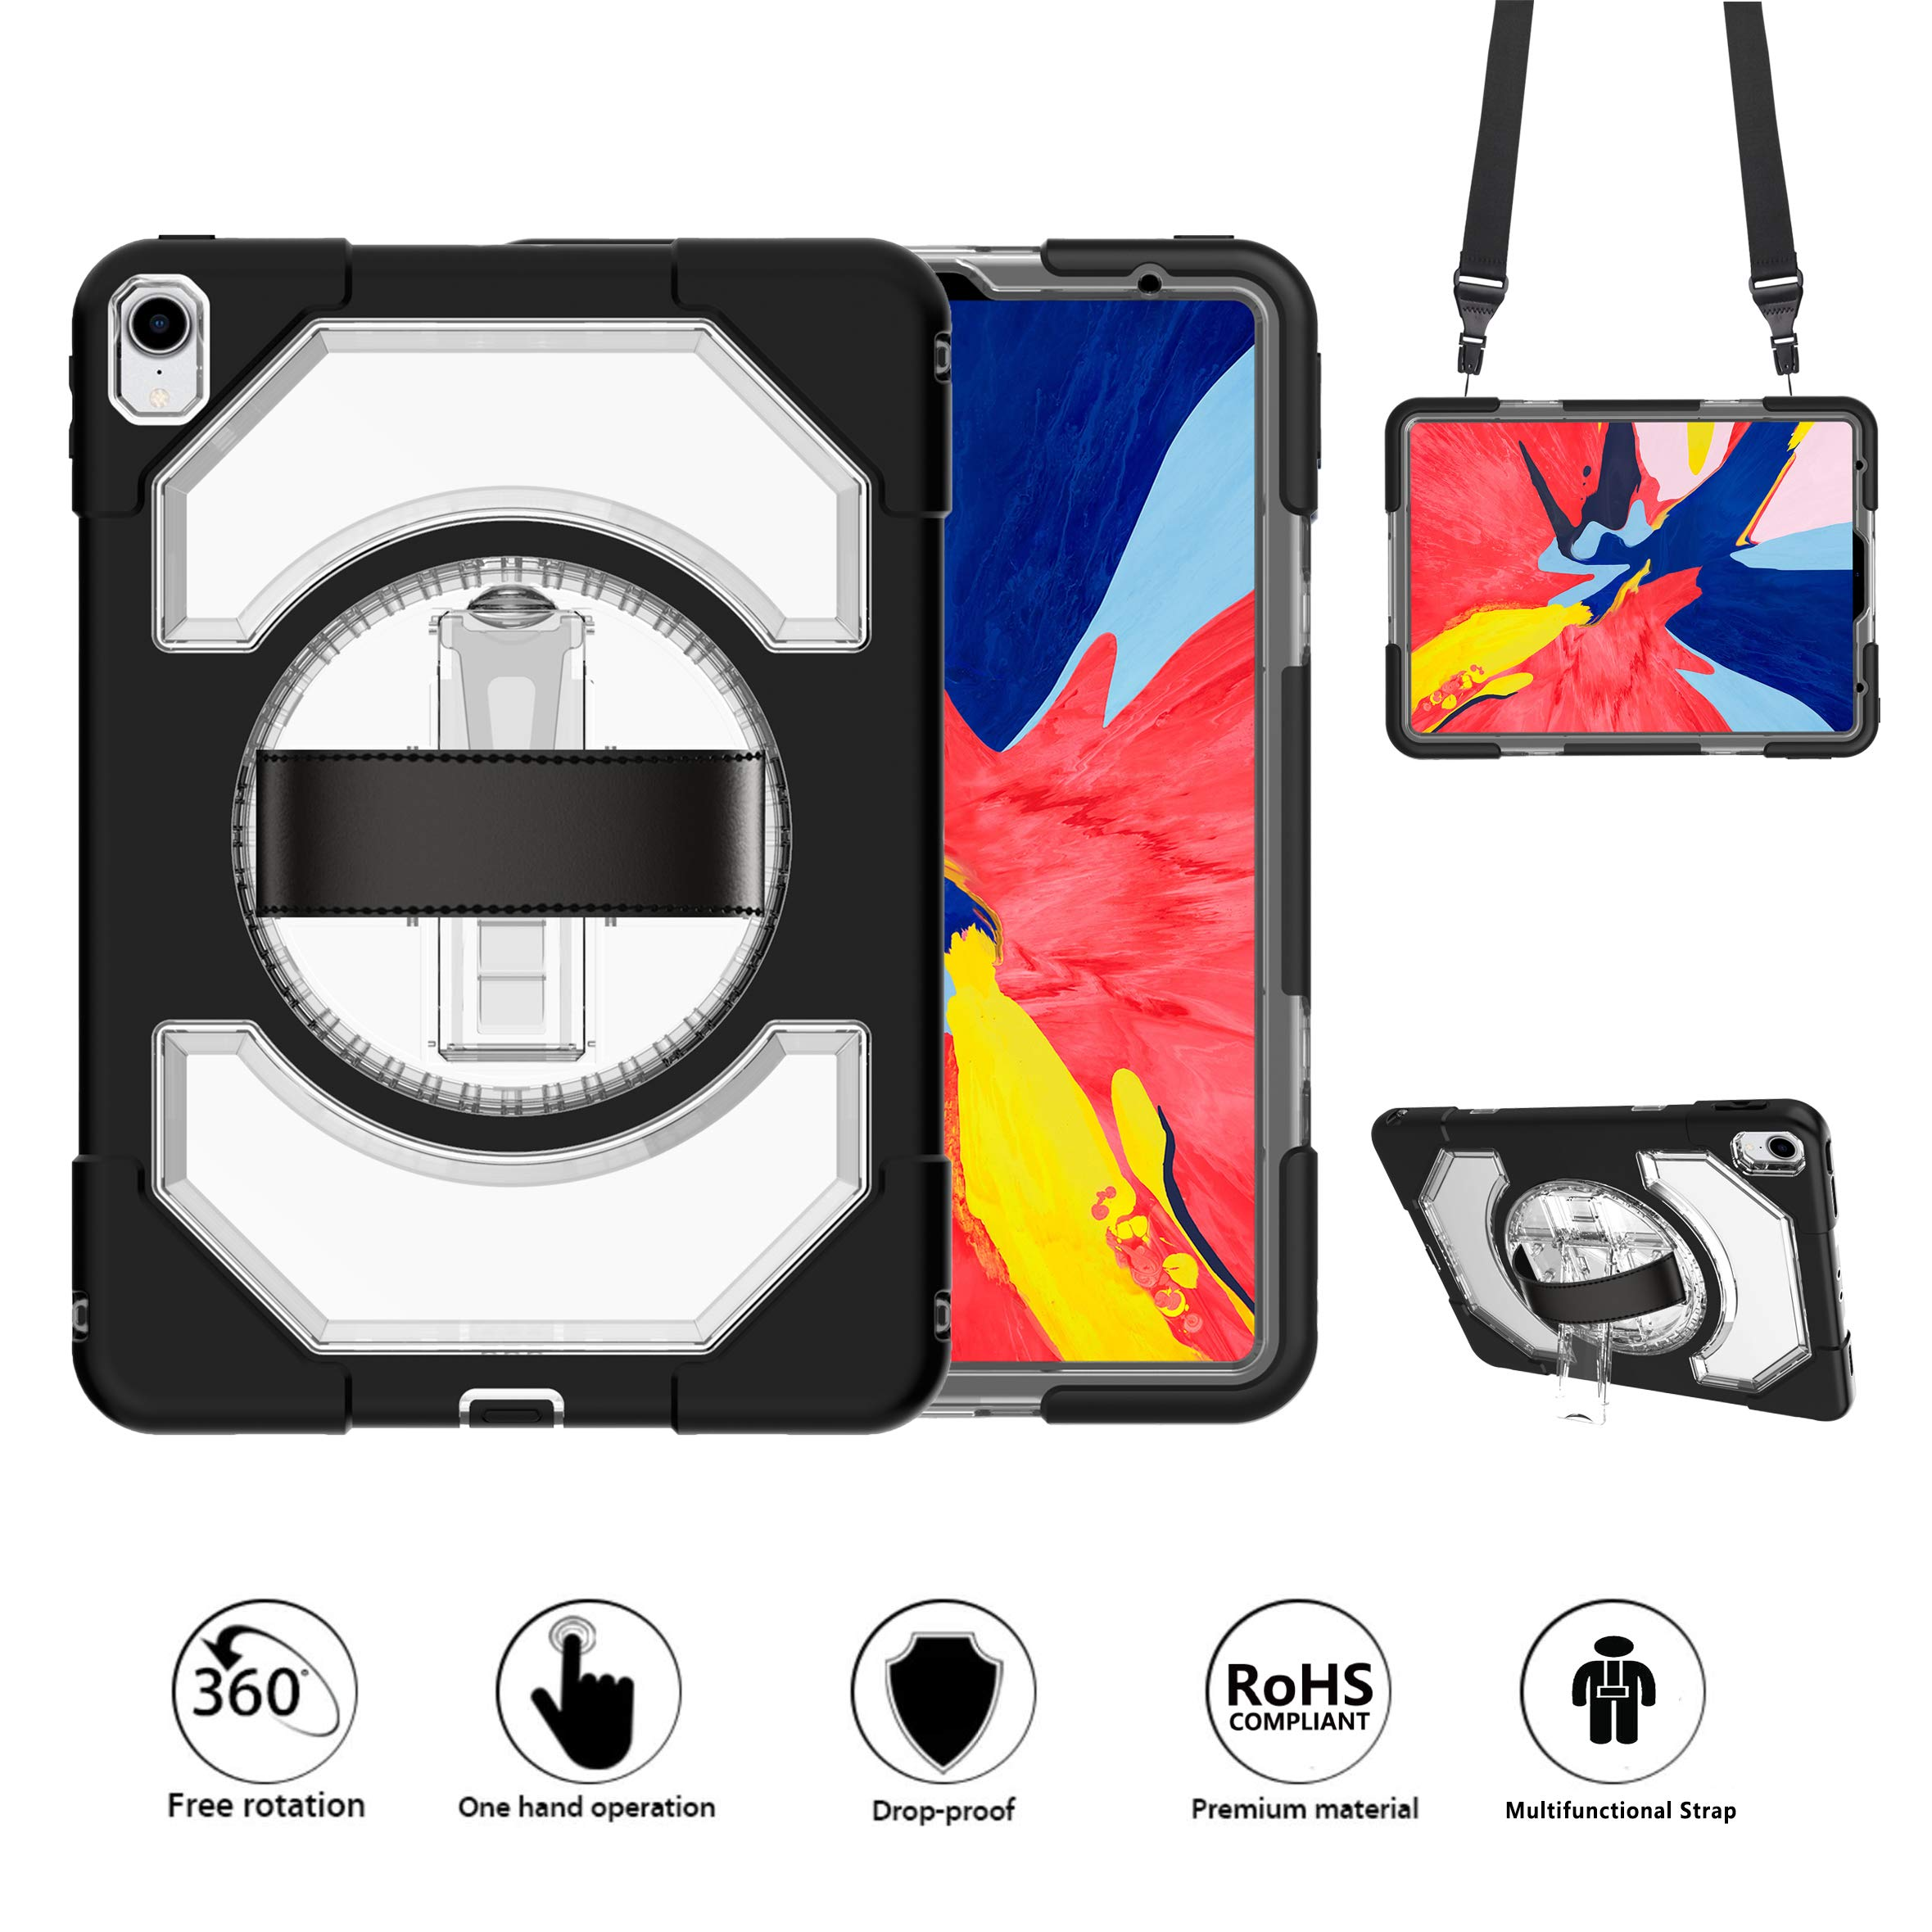 New iPad Pro 11 Case,GROLEOA 360 Degree Rotatable Handstrap Shoulder Strap (3 Layer Heavy Duty) Case with Kickstand, Kids Proof 11 Inch iPad Pro Case 2018 Release A1934 A1980 A2013 A1979 (Clear+Black)